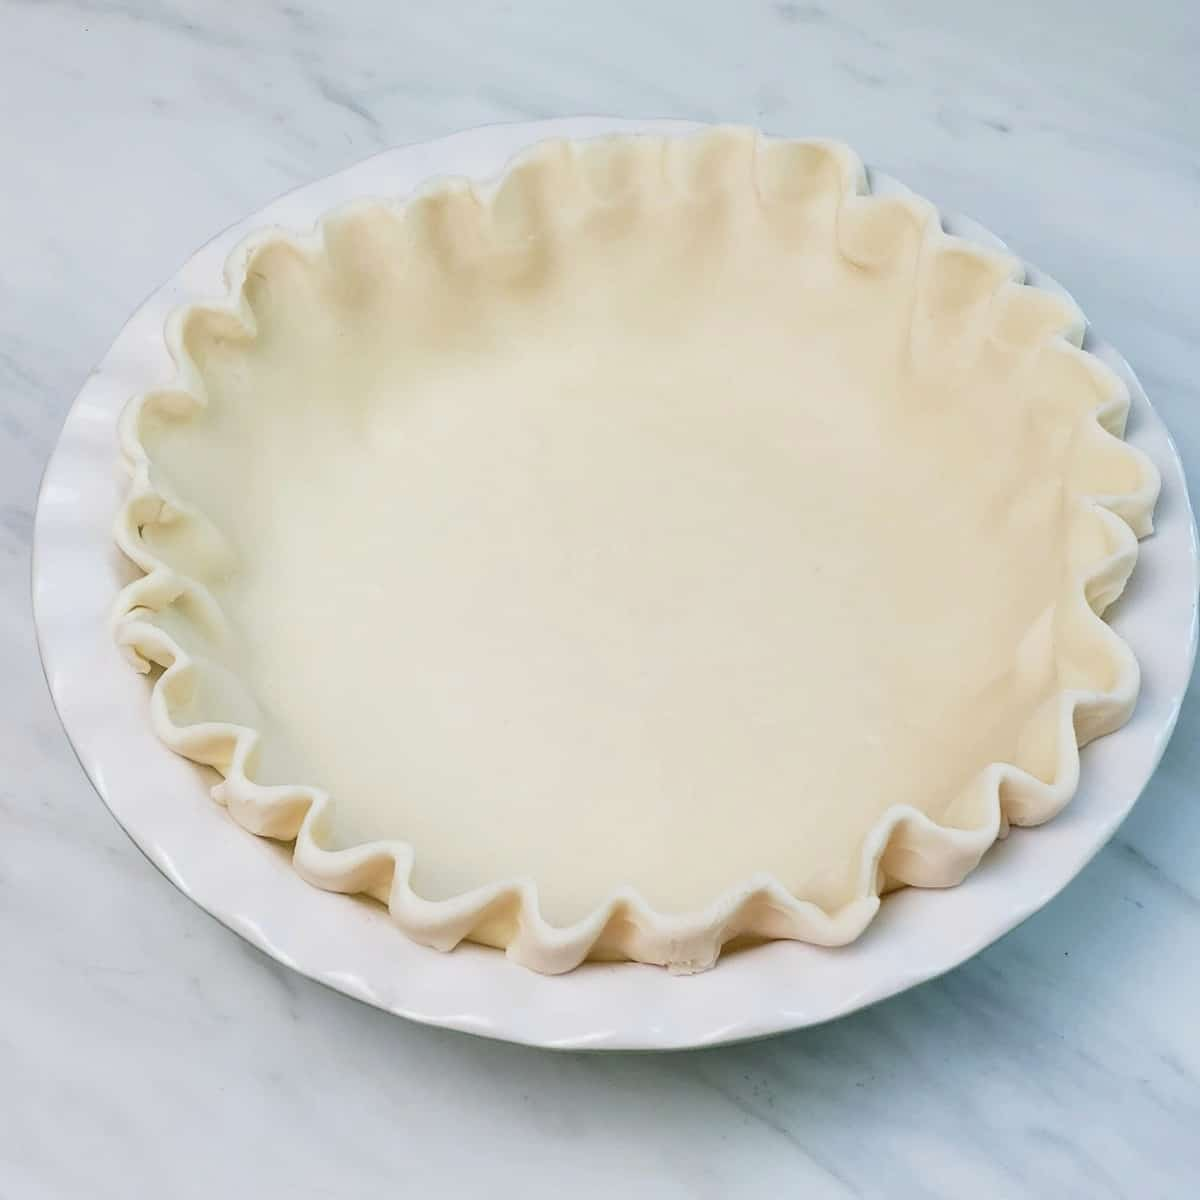 unbaked pie crust fluted in a white pie plate on a marble surface